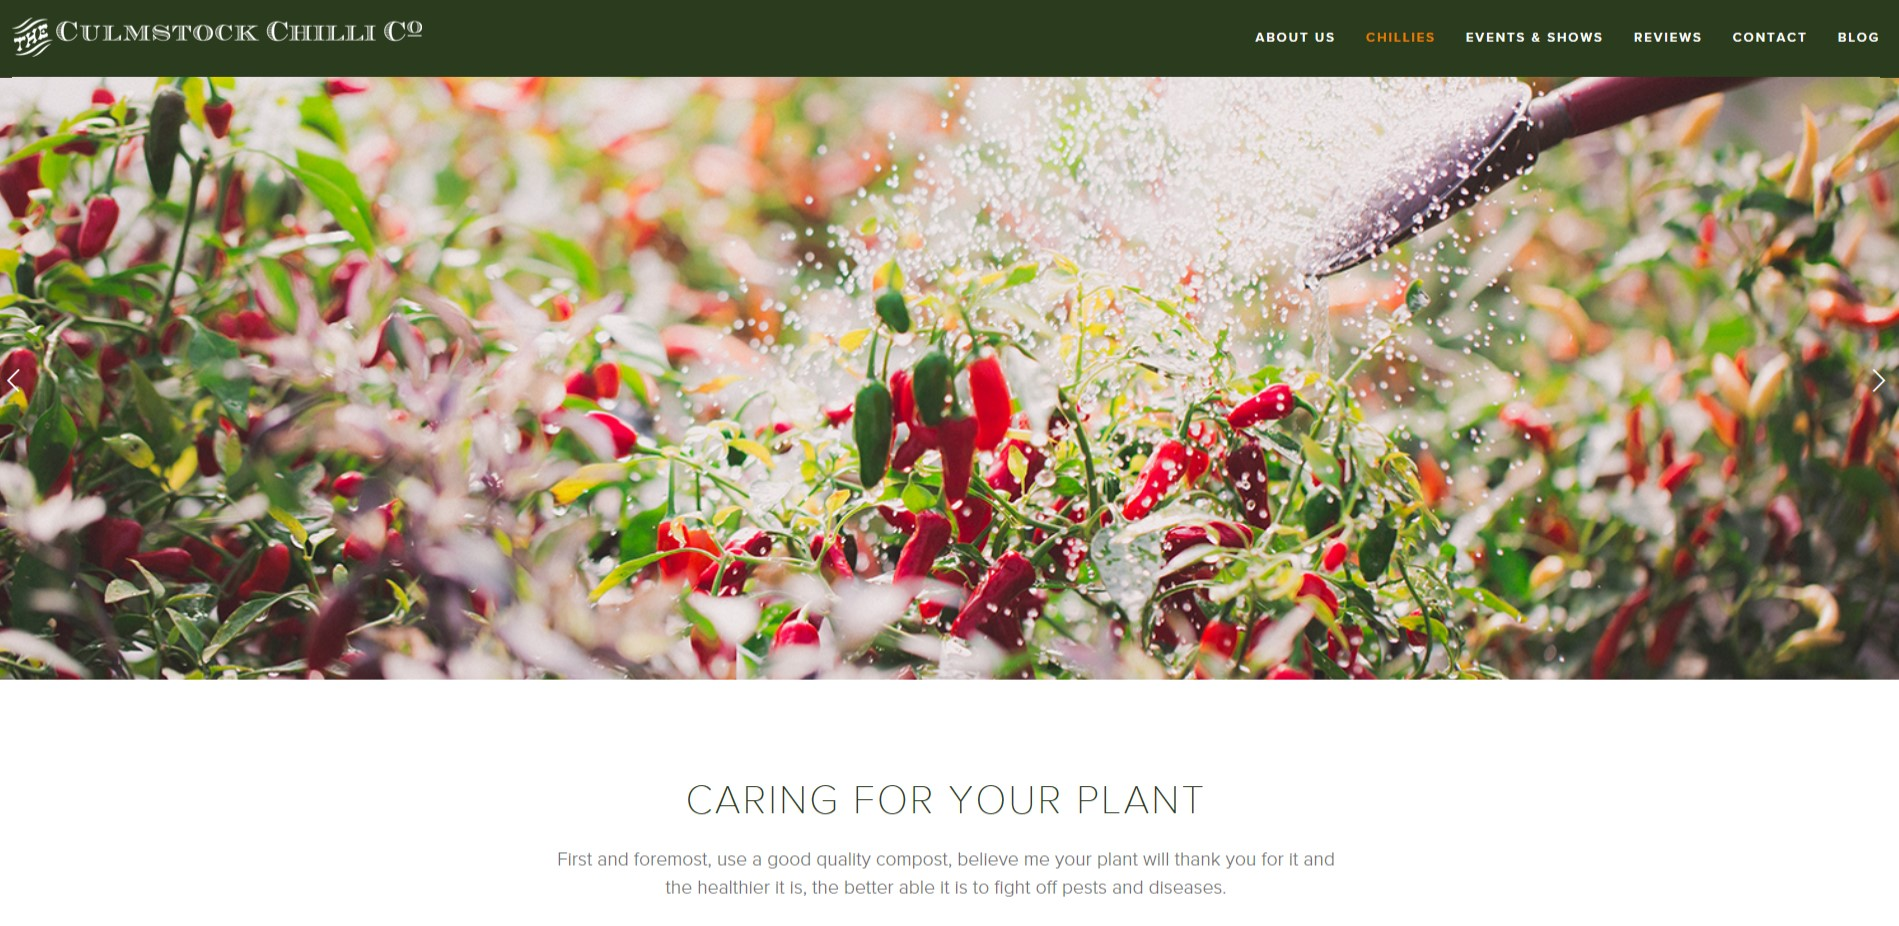 Screen shot of the Caring for your plant page on the Culmstock Chilli Co Website, commercial shoot by Perspectives Photography